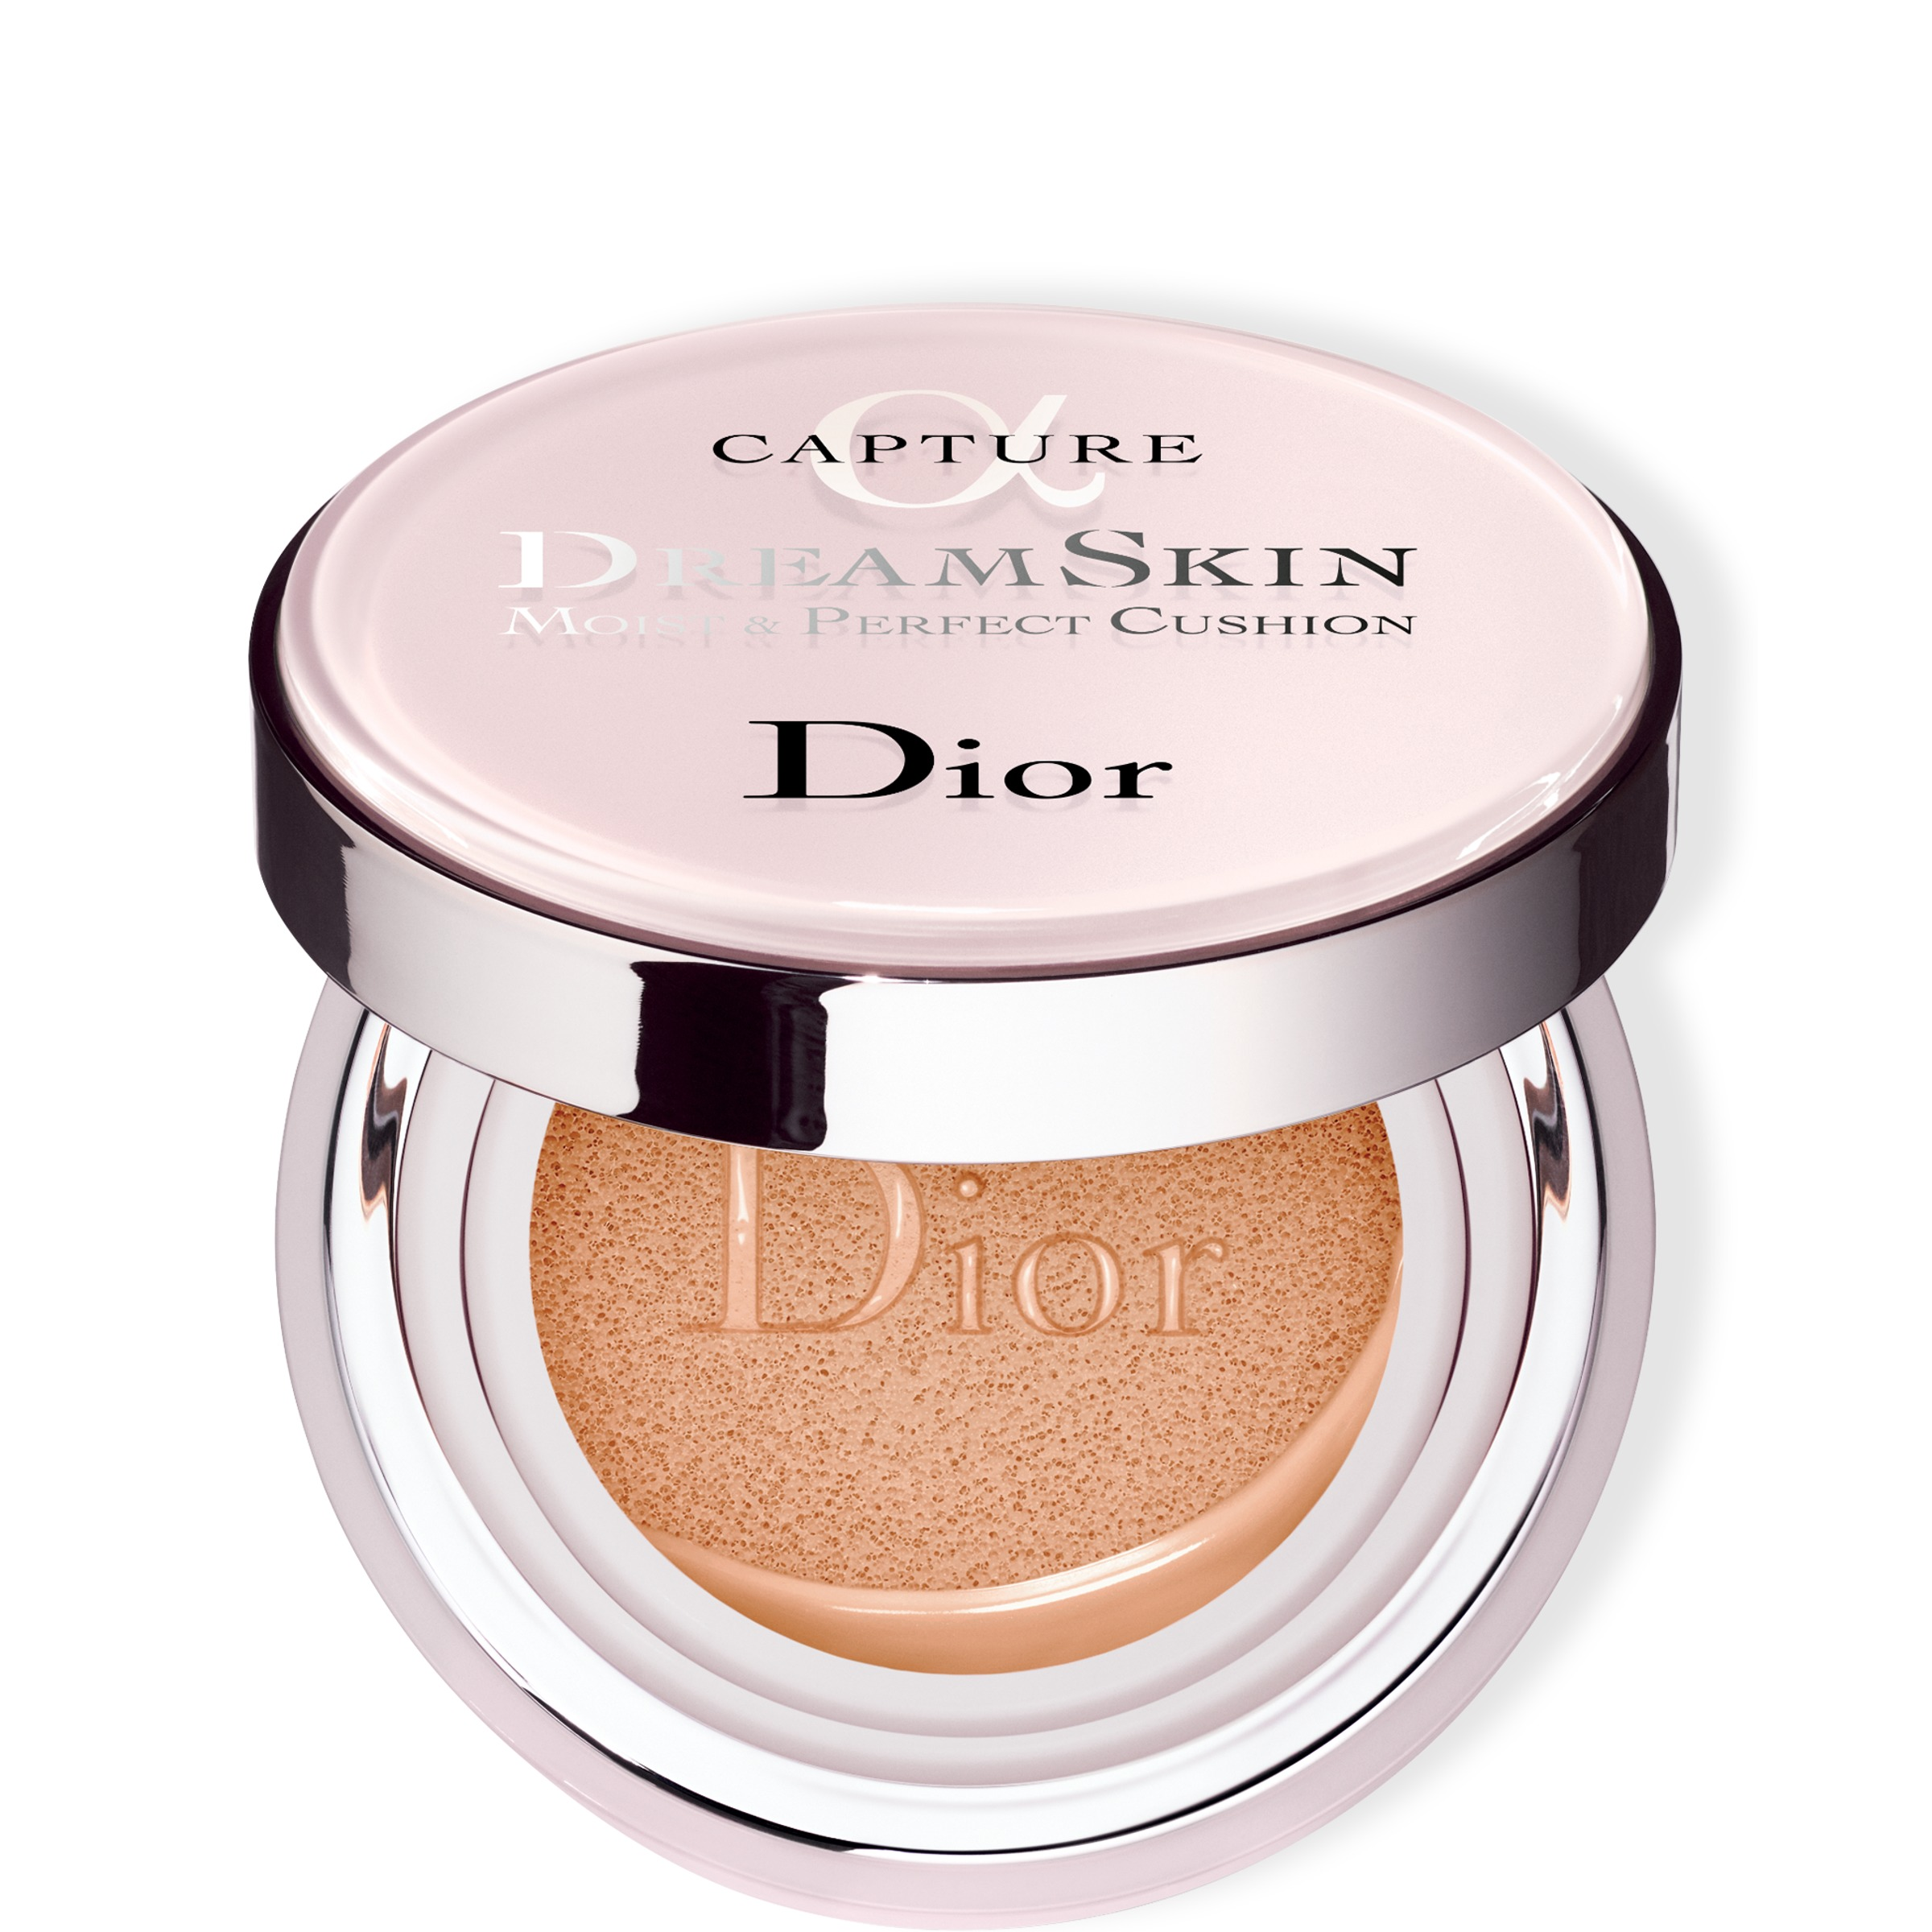 Capture Dreamskin Moist & Perfect Cushion 10